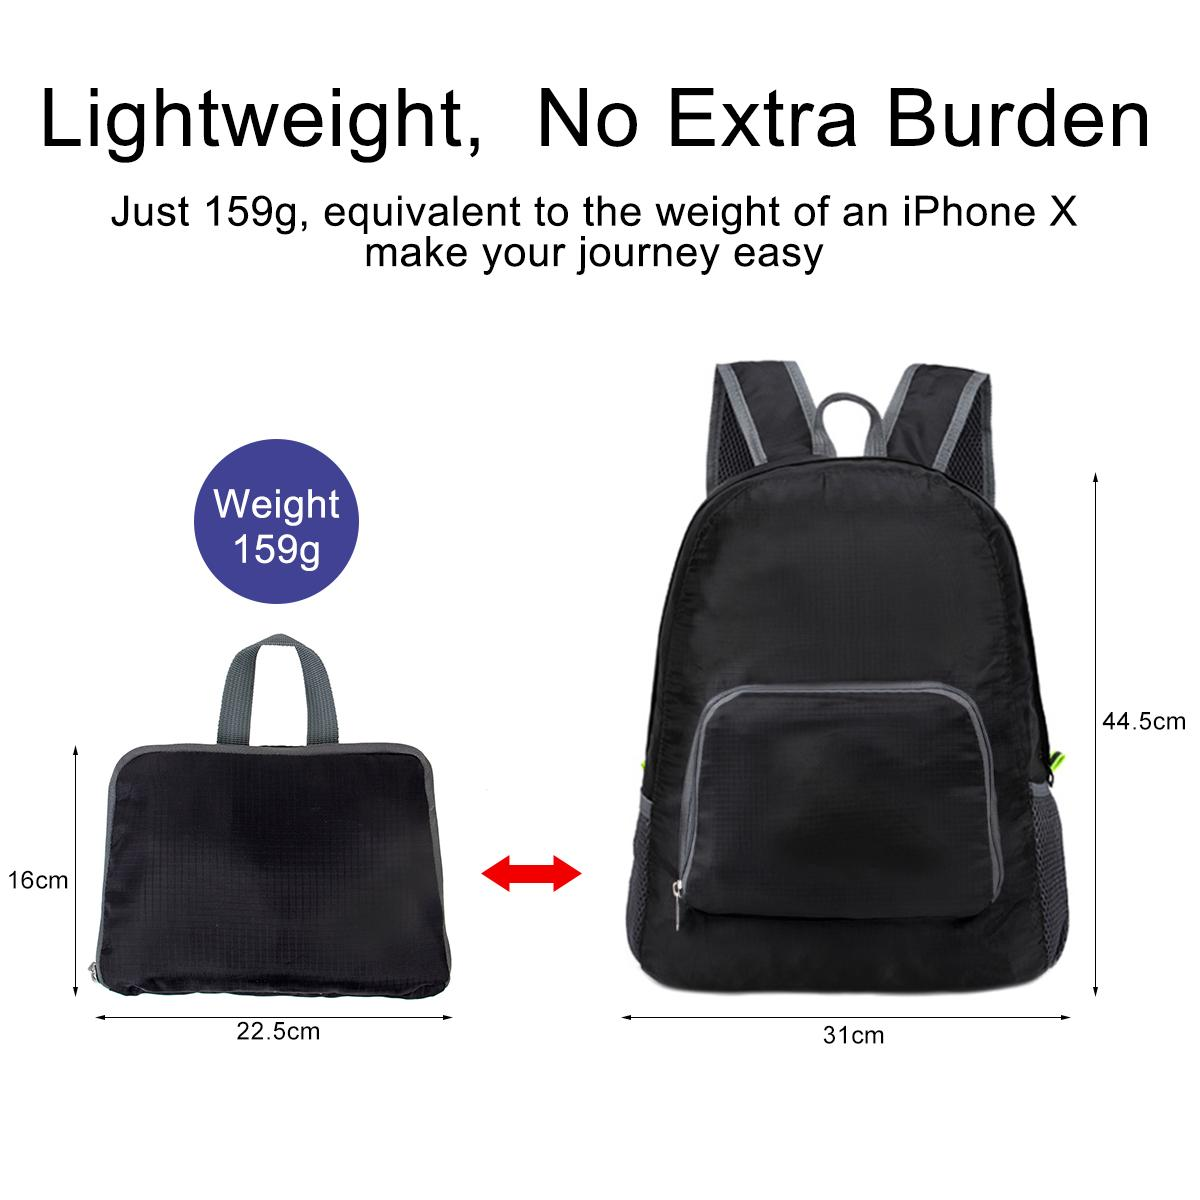 Unisex Foldable Portable backpack light weight Daypack Small Handy Waterproof Outdoor travel with side pocket good for school company gifts Black